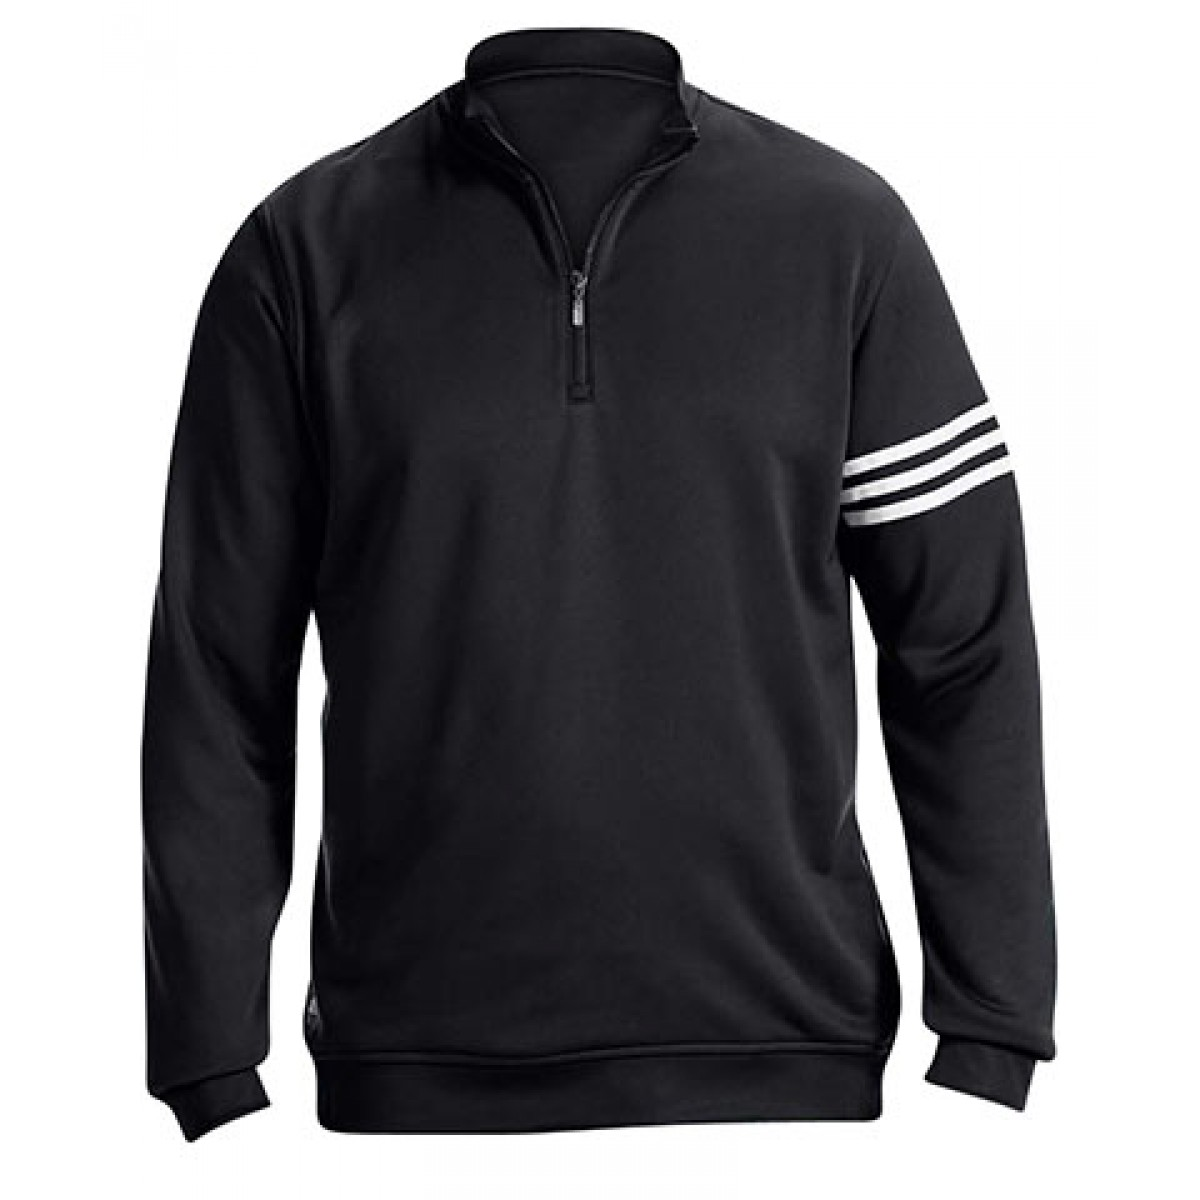 Adidas Golf Men's ClimaLite® 3-Stripes Pullover-Black-L